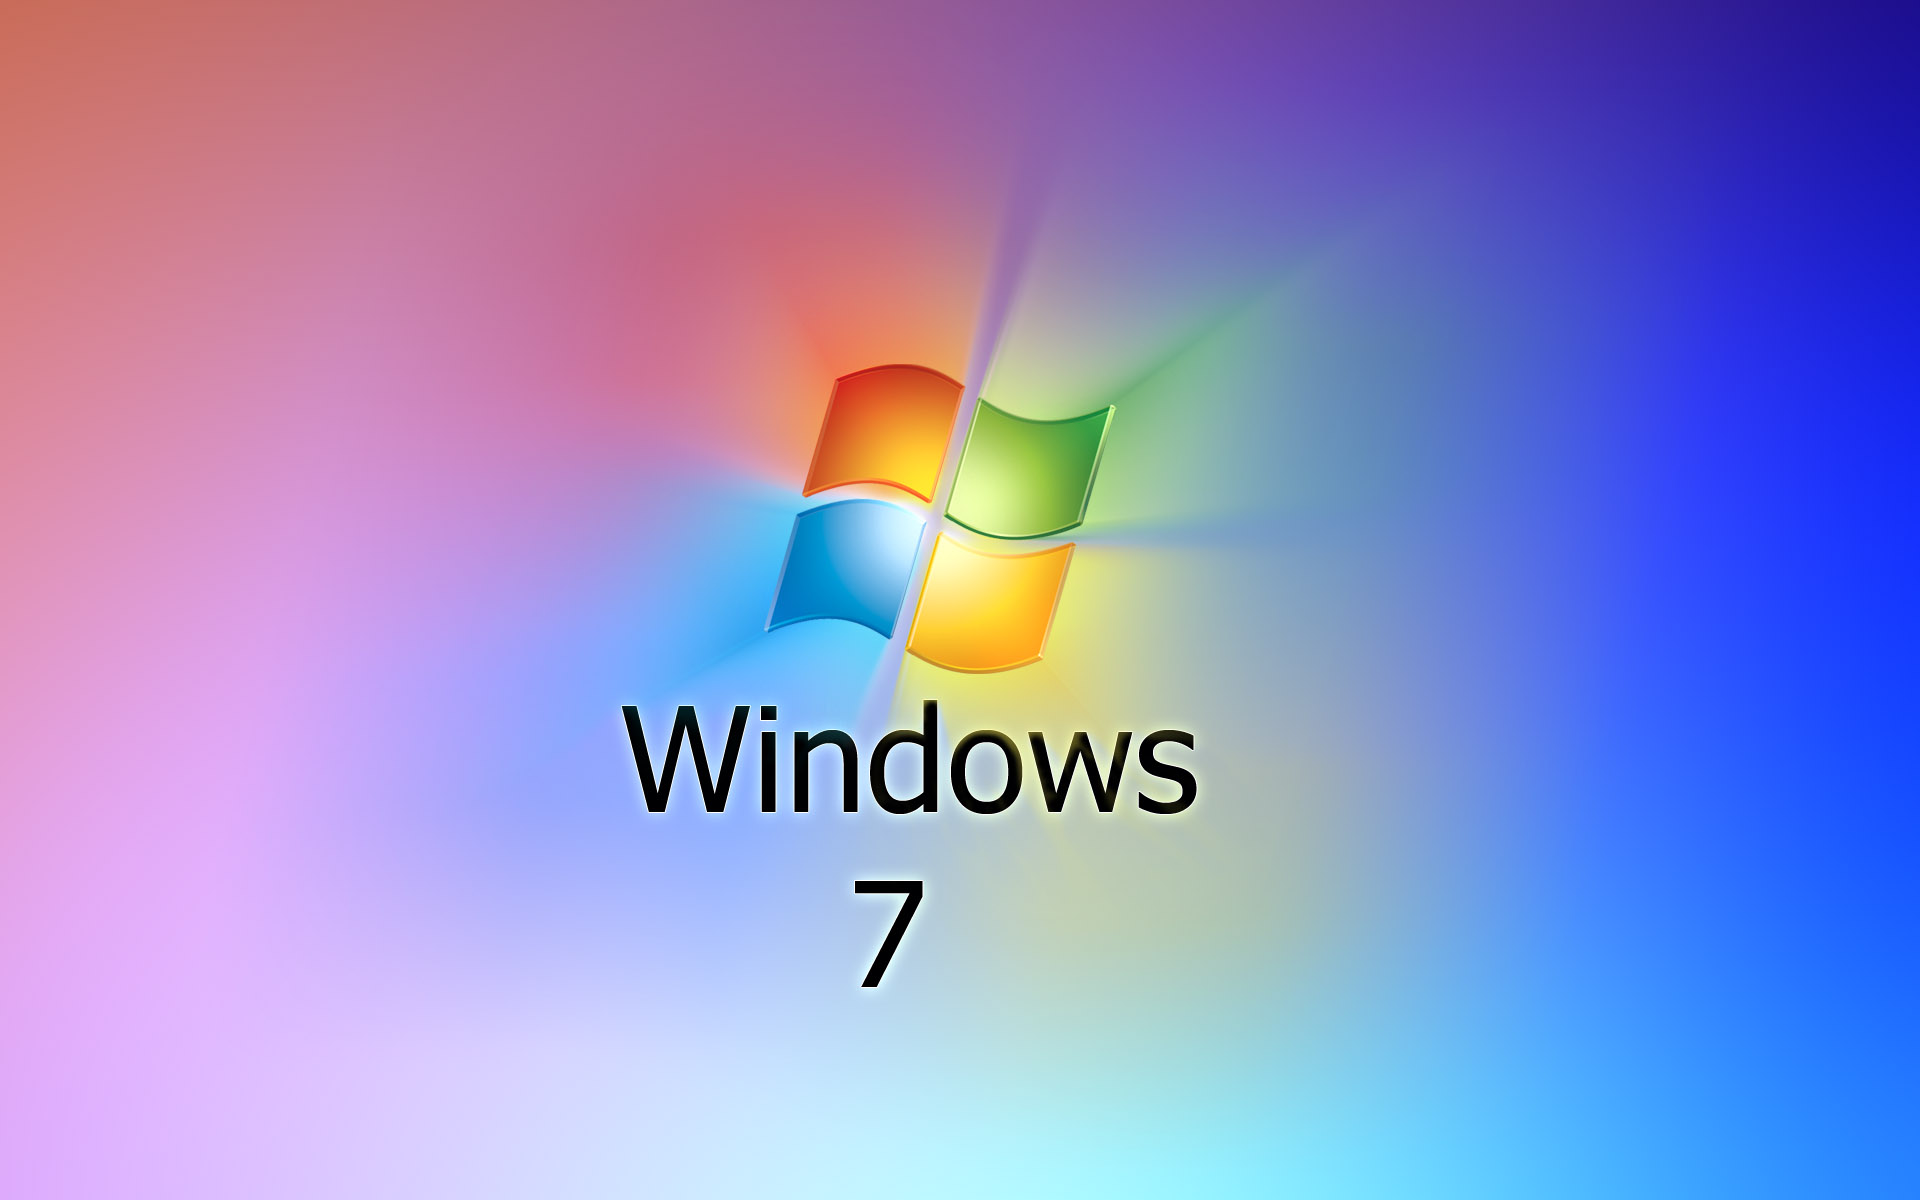 photos windows 7 pictures windows 7 pictures windows 7 pictures 1920x1200